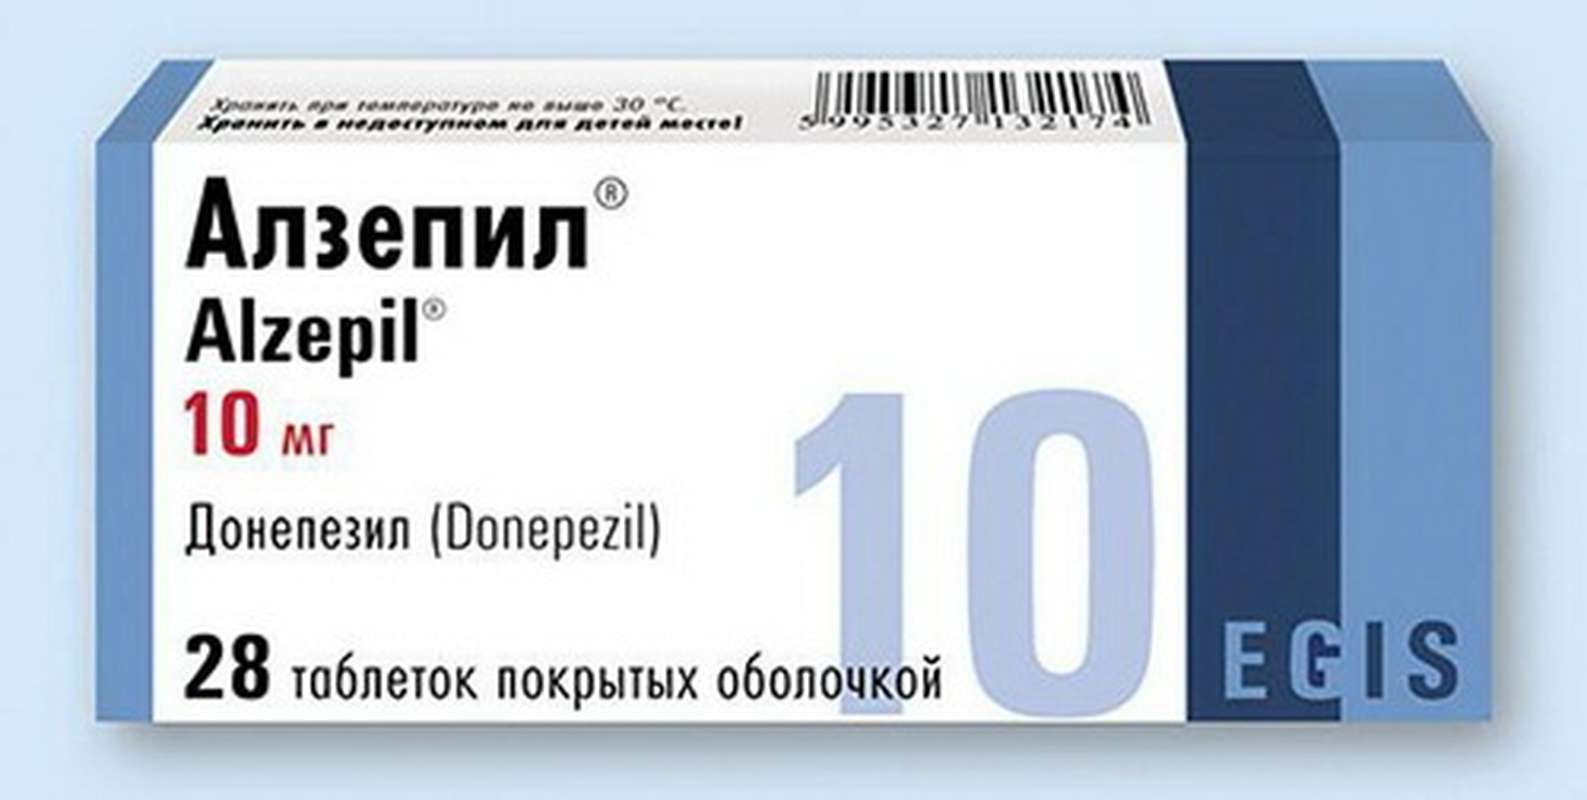 Alzepil 10mg 28 pills buy treatment of dementia symptoms with Alzheimer's disease online